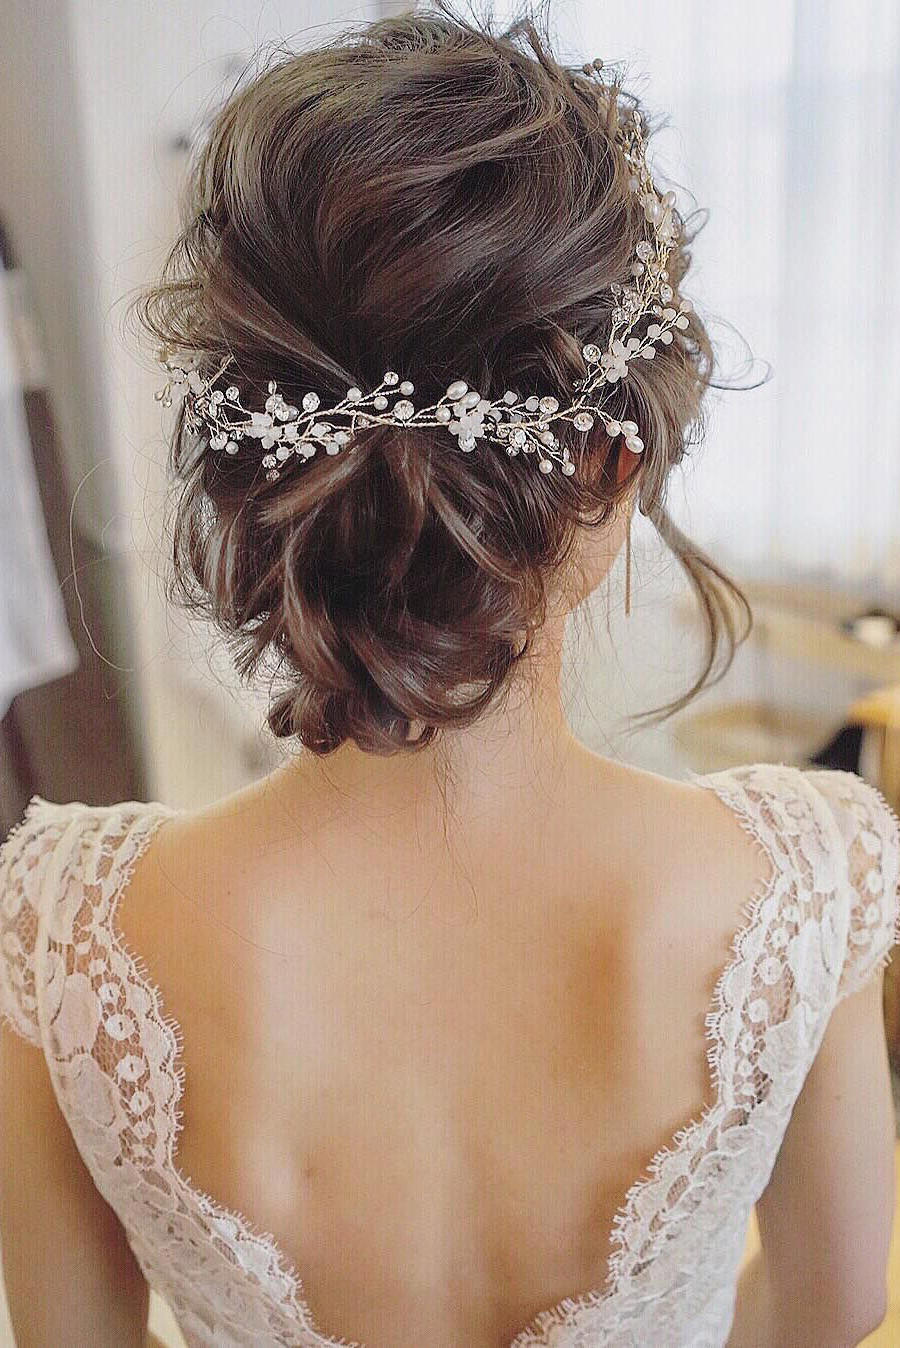 Trendy Pearls Bridal Hairstyles Intended For 25 Chic Updo Wedding Hairstyles For All Brides (View 14 of 20)